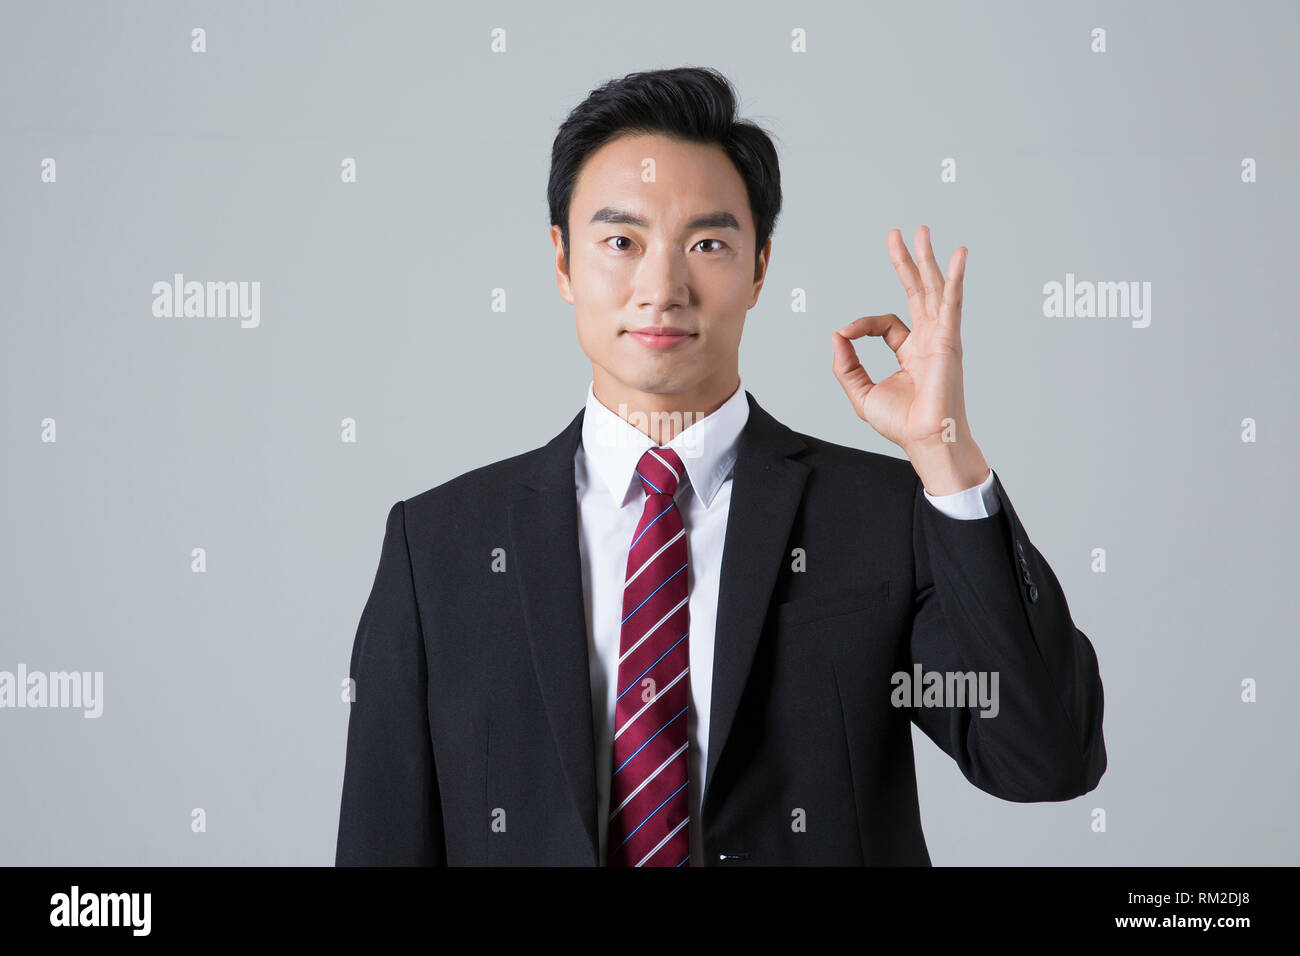 Young businessman concept photo. 017 Photo Stock